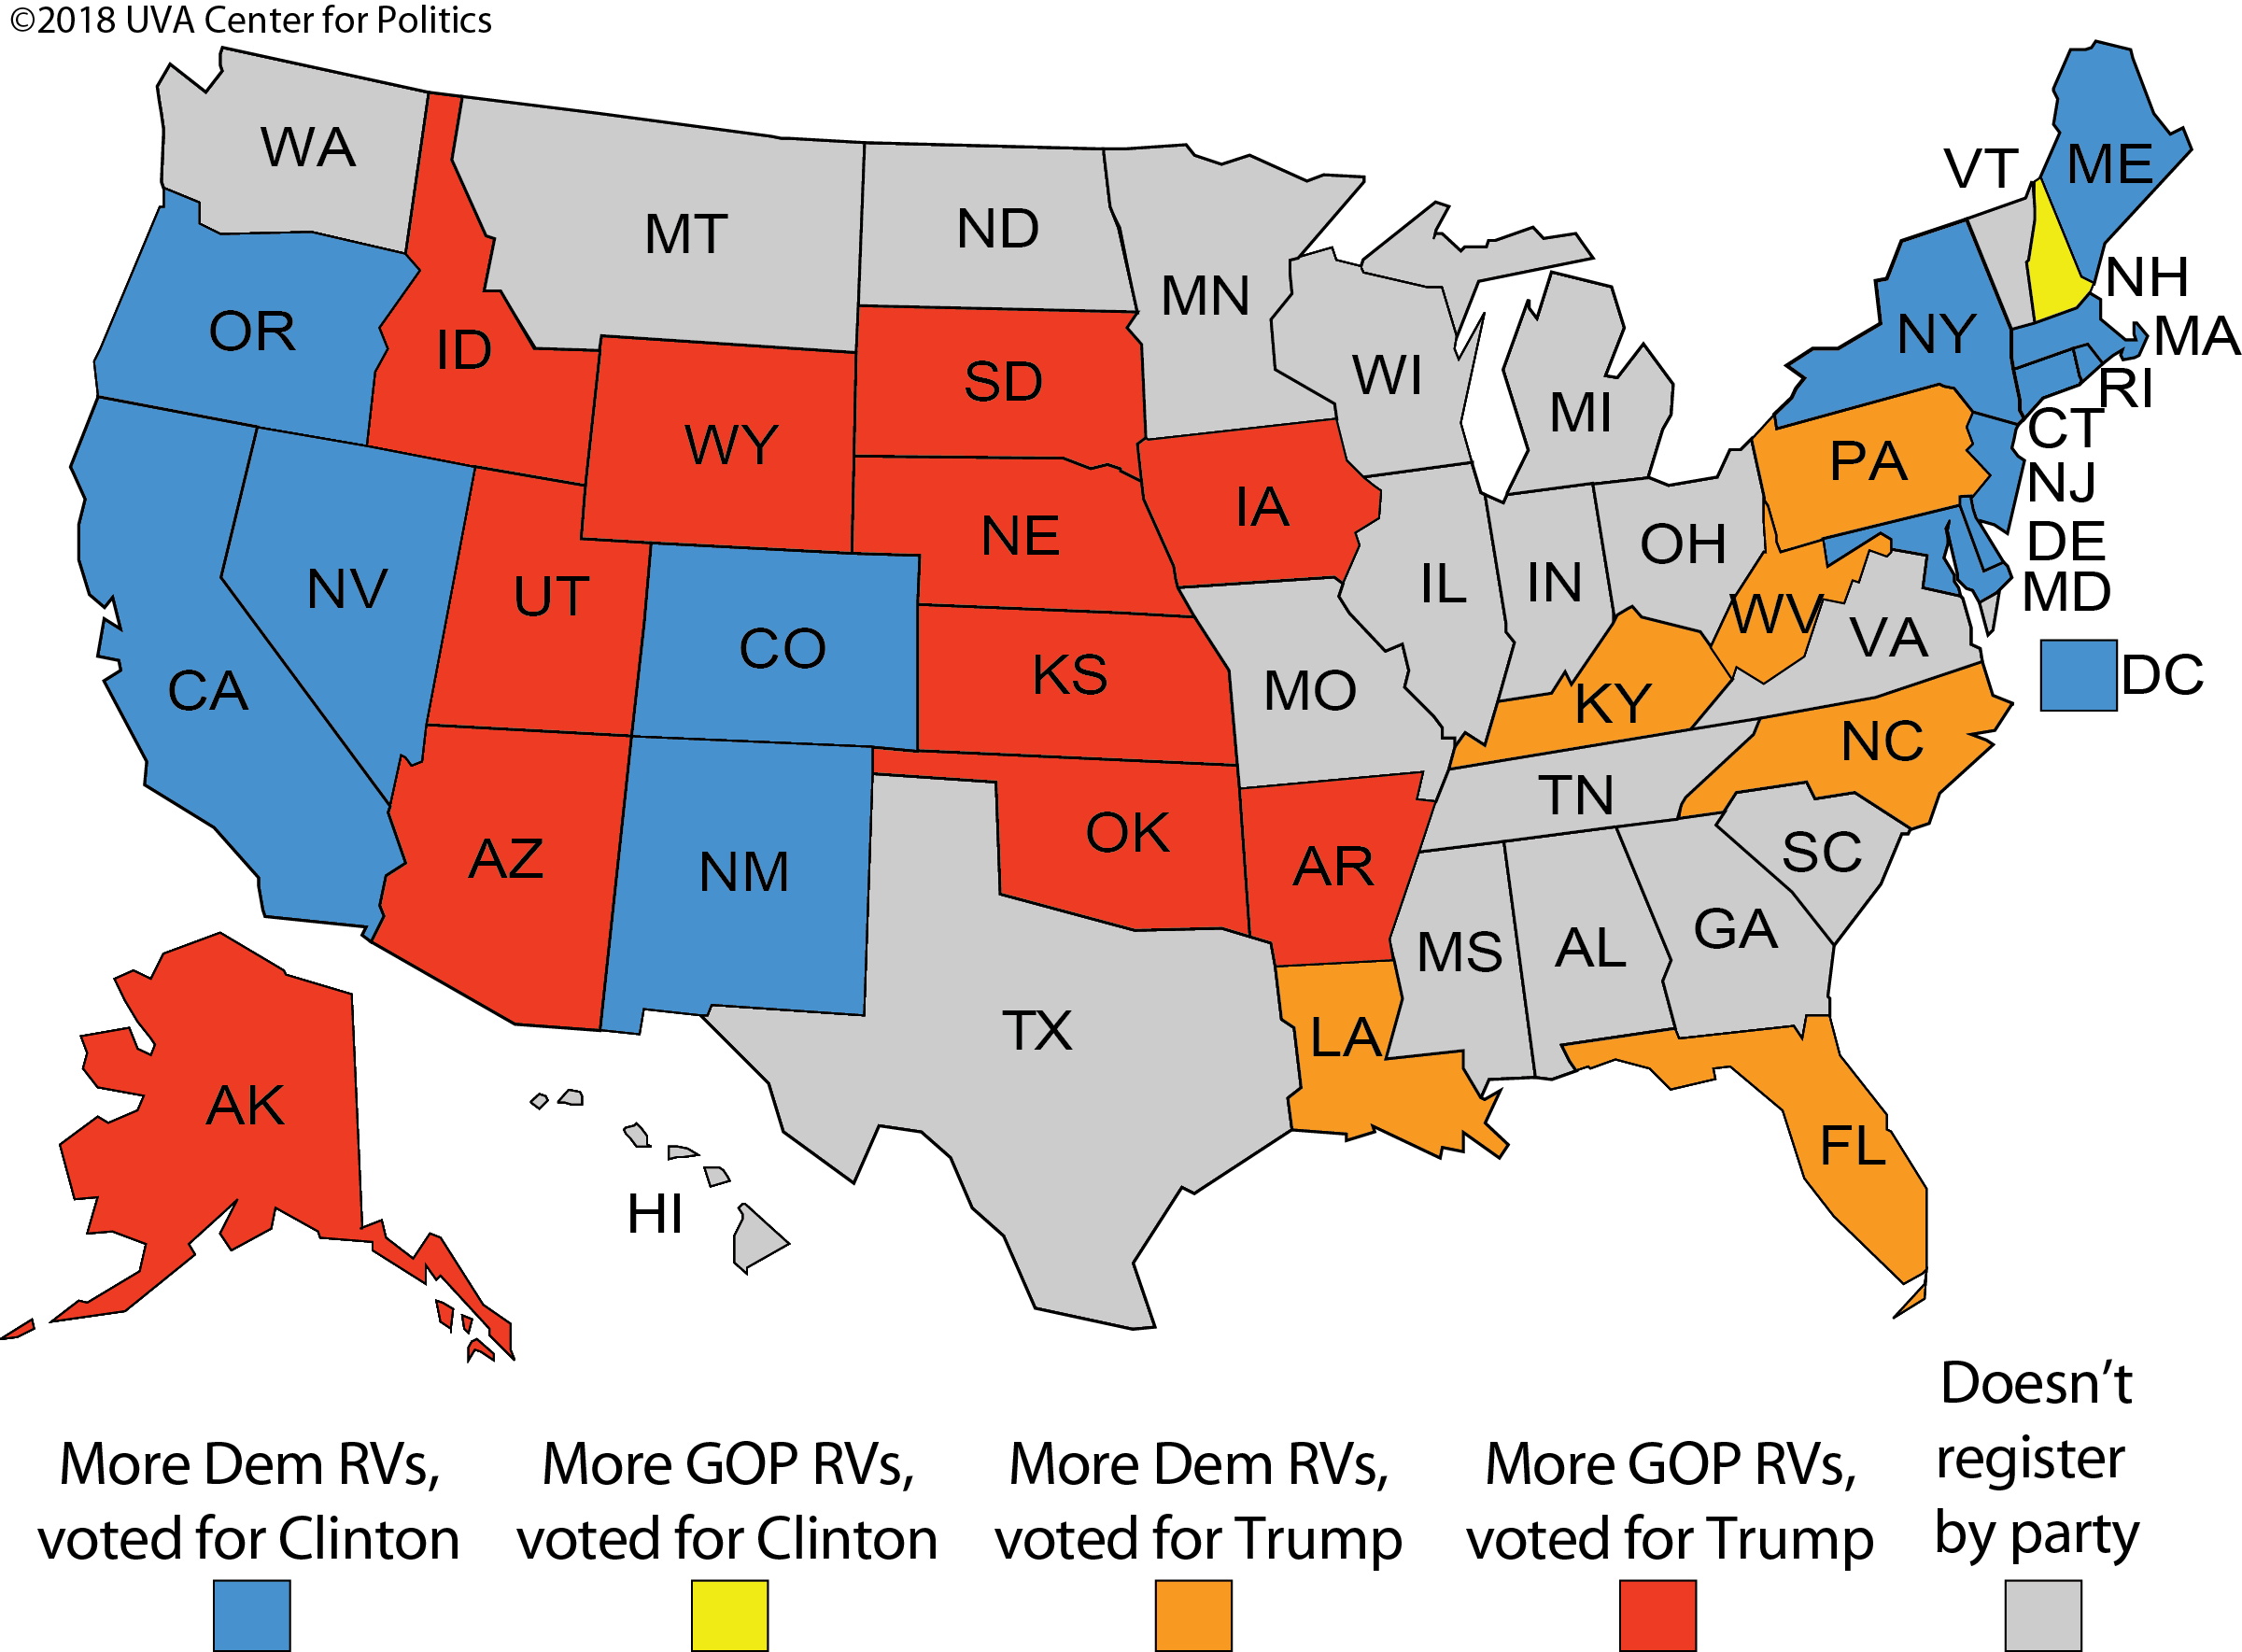 Us Map Democrat Republican States 2016.Larry J Sabato S Crystal Ball Registering By Party Where The